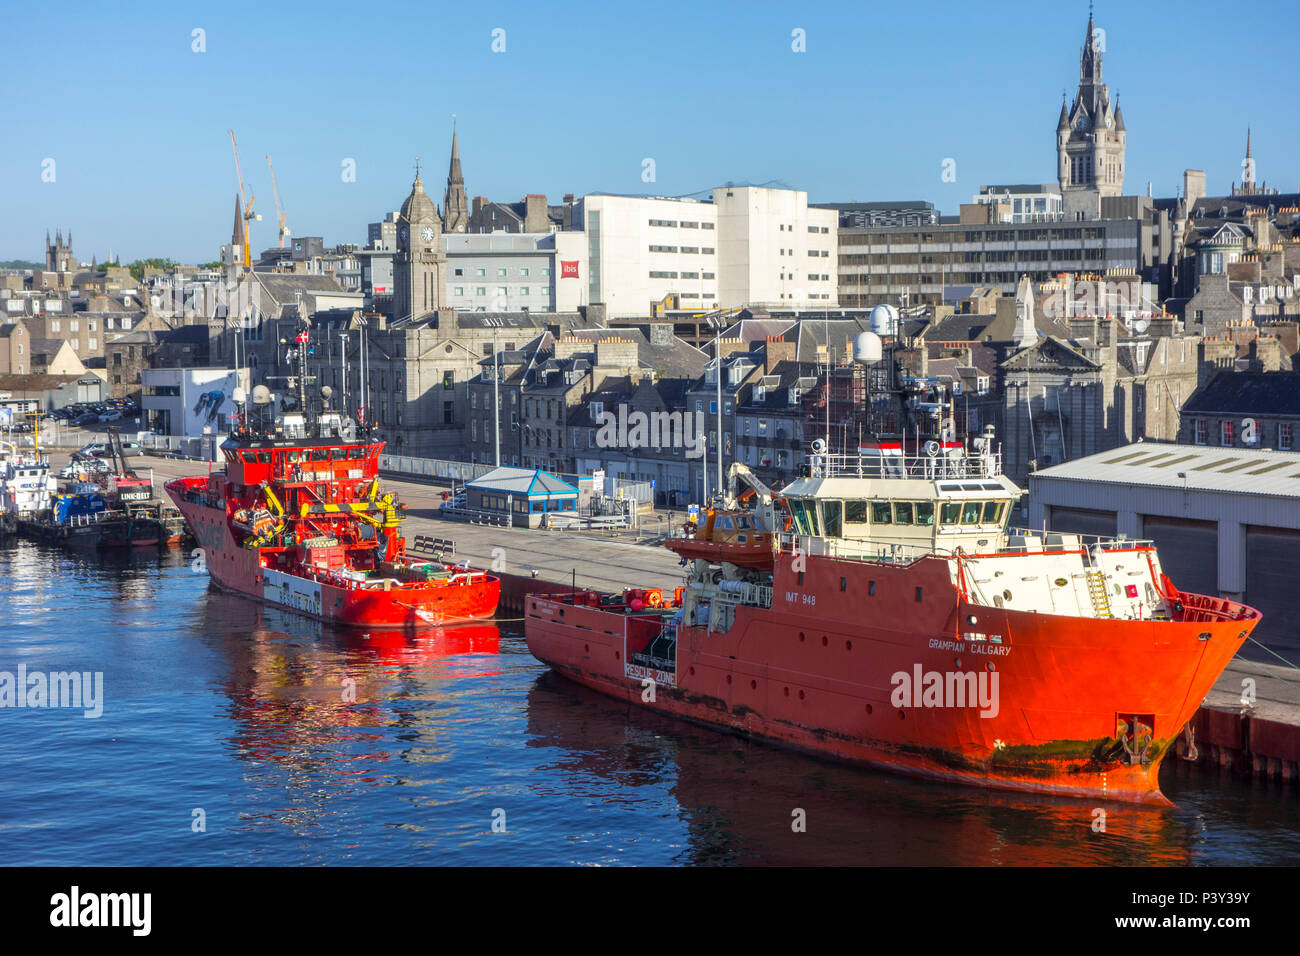 Grampian Calgary, Standby Safety Vessel docked in the Aberdeen port, Aberdeenshire, Scotland, UK - Stock Image